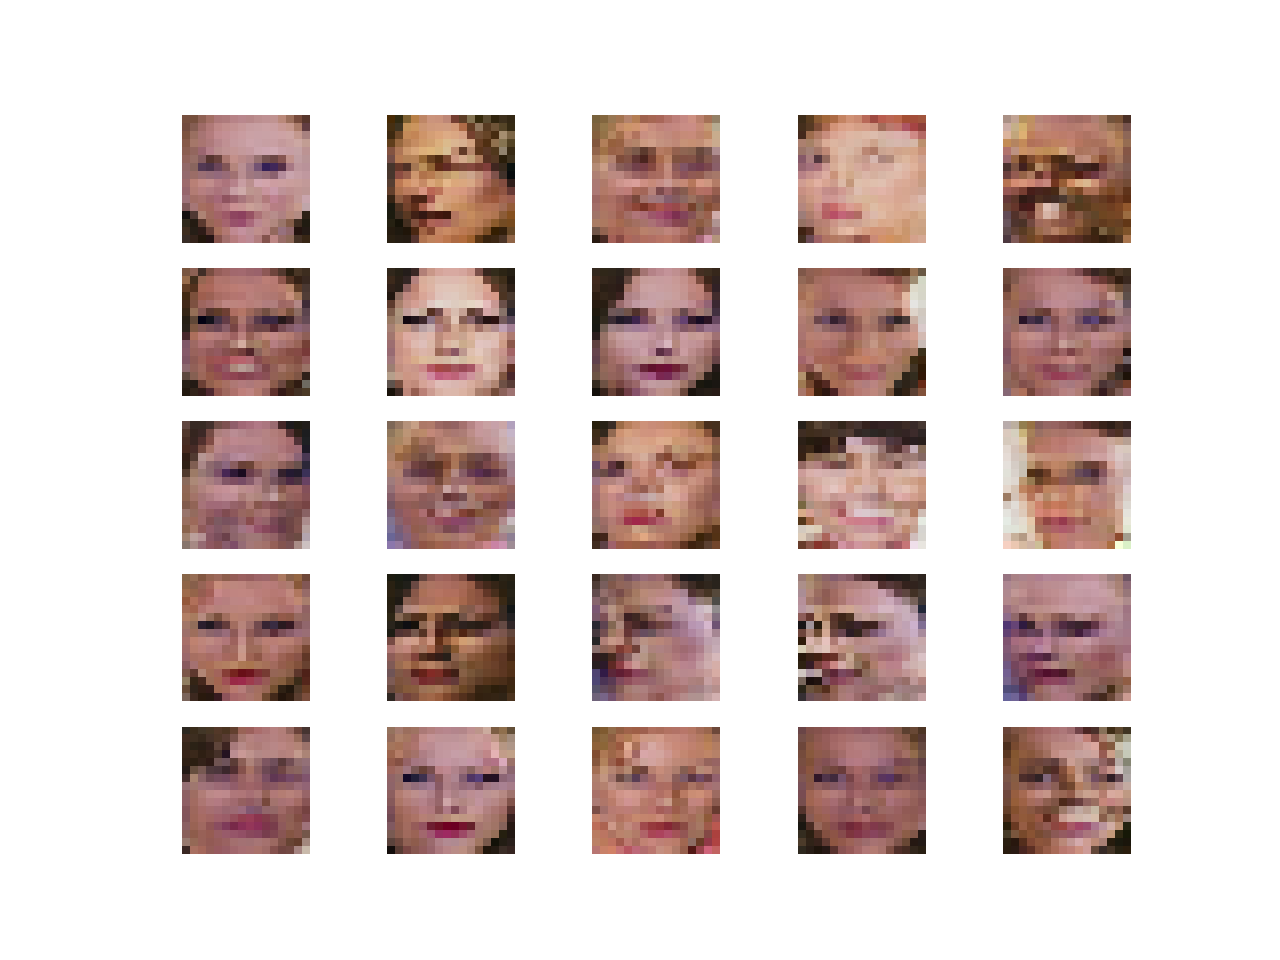 Plot of 25 Synthetic Faces with 16x16 Resolution Generated With a Final Progressive Growing GAN Model